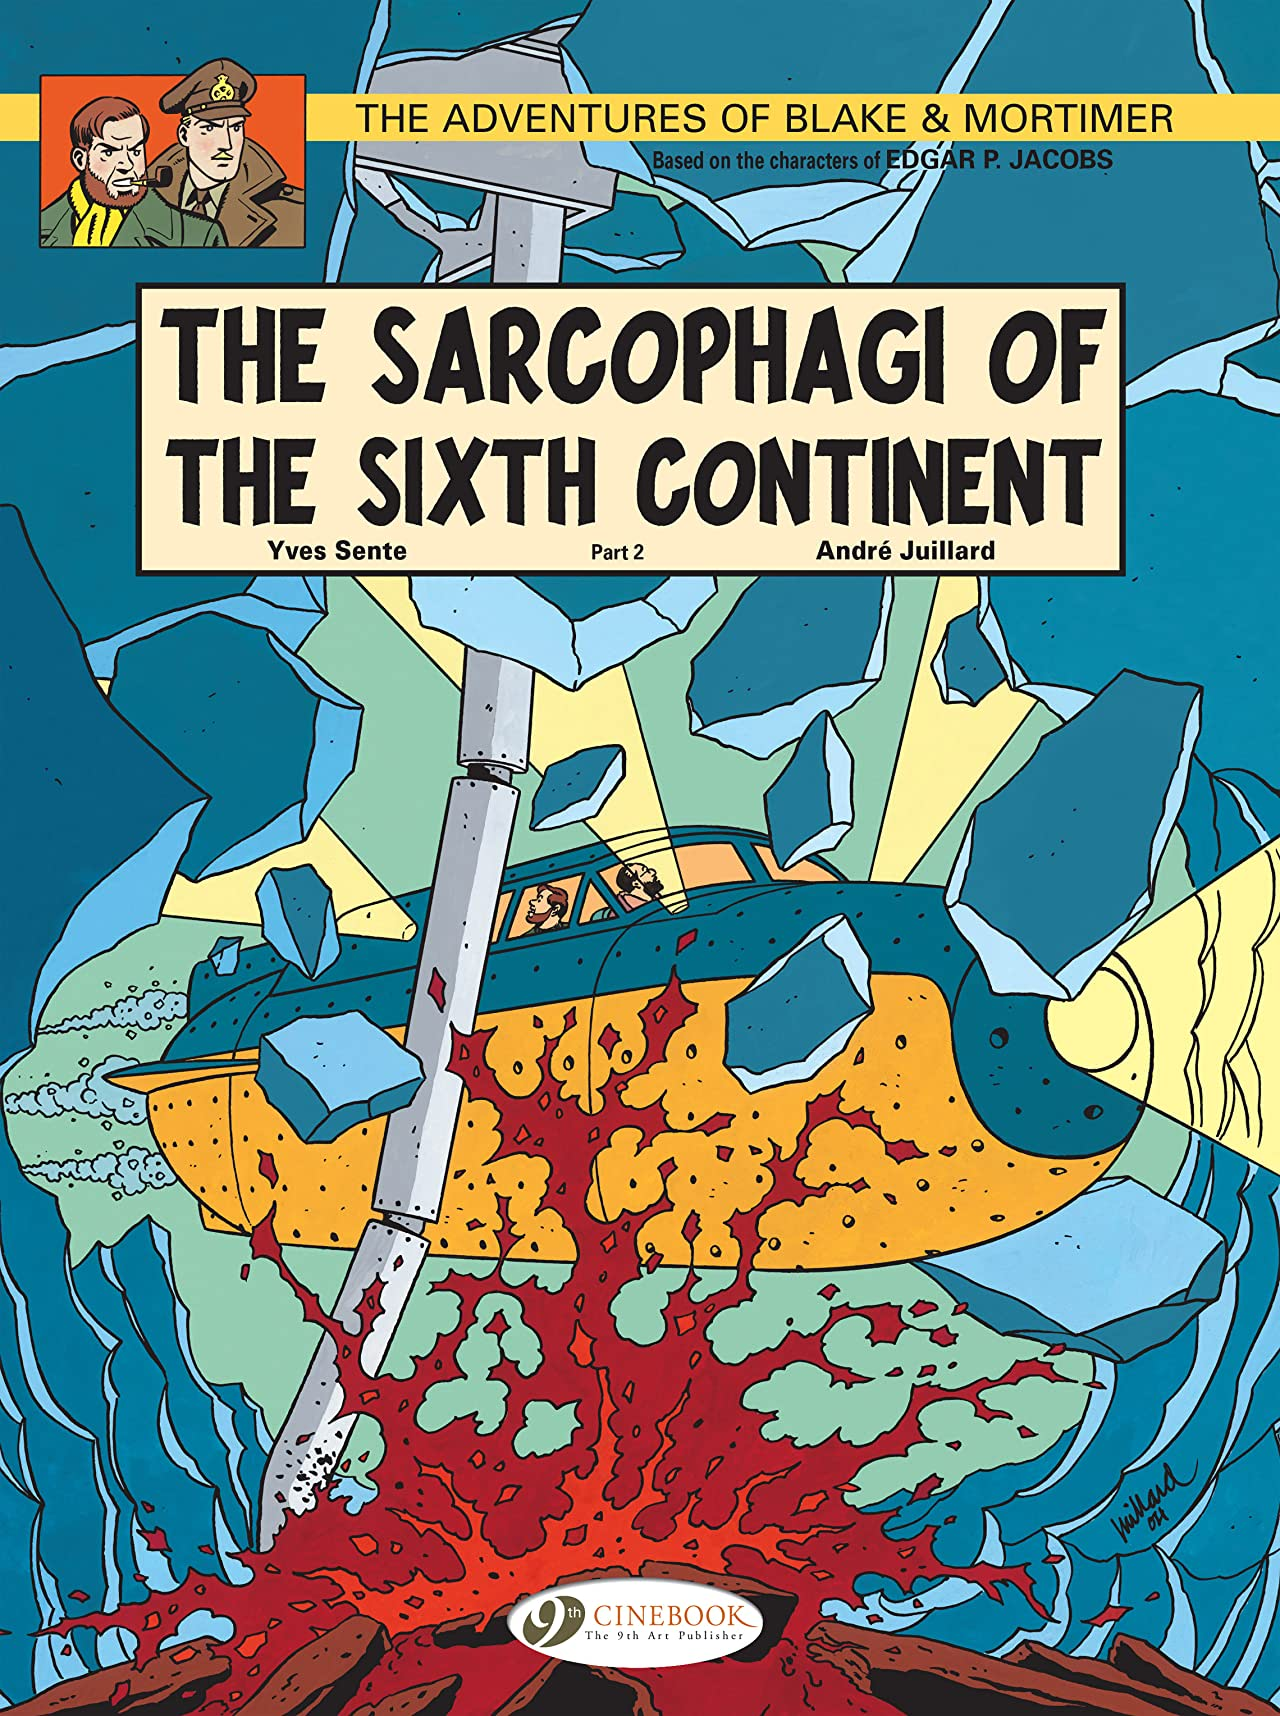 Blake & Mortimer Vol. 10: The Sarcophagi of the Sixth Continent Part 2